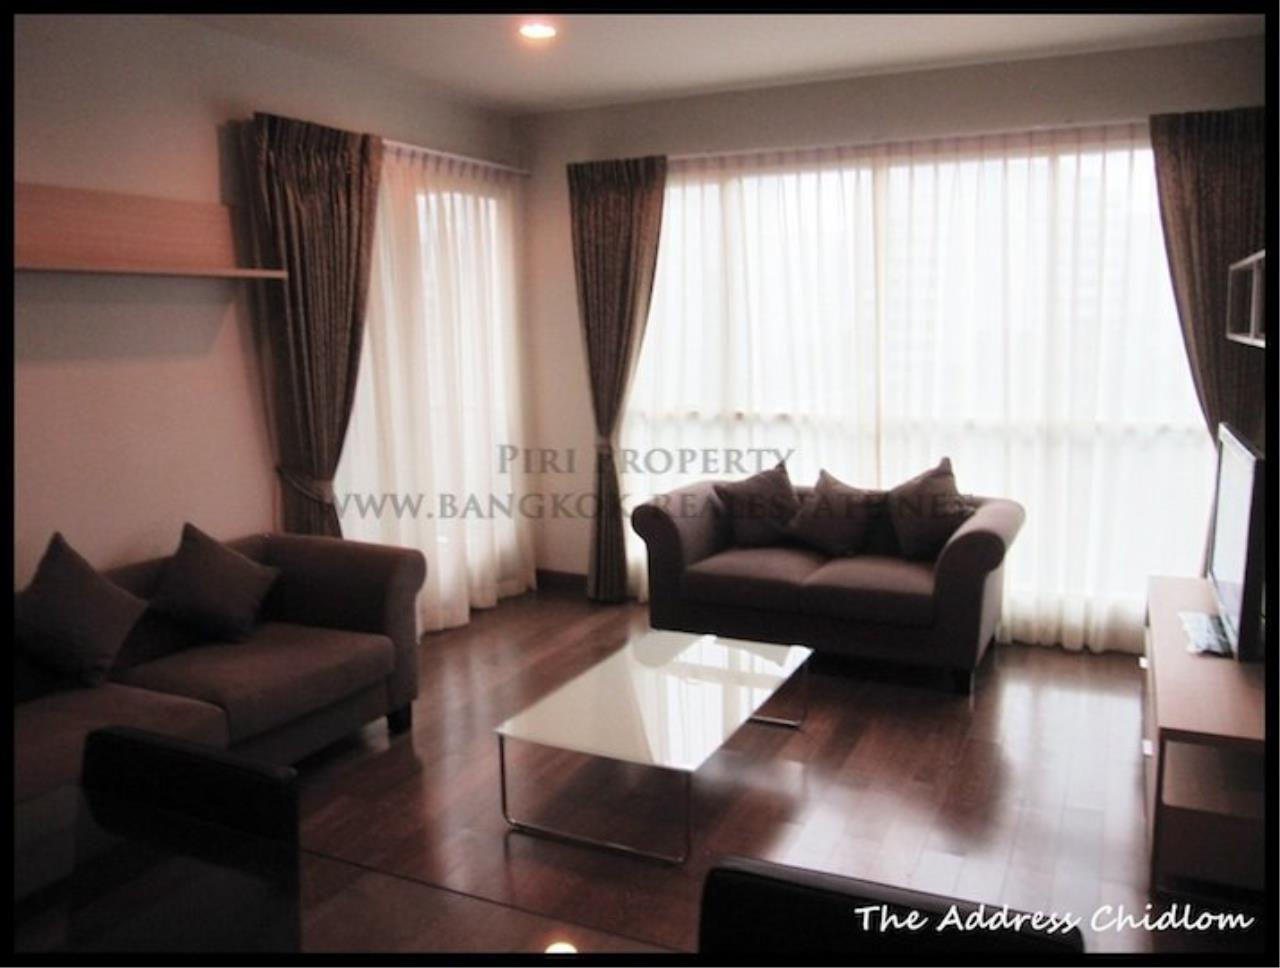 Piri Property Agency's Biggest available 2 Bedroom in The Address Chidlom - Fully furnished 1